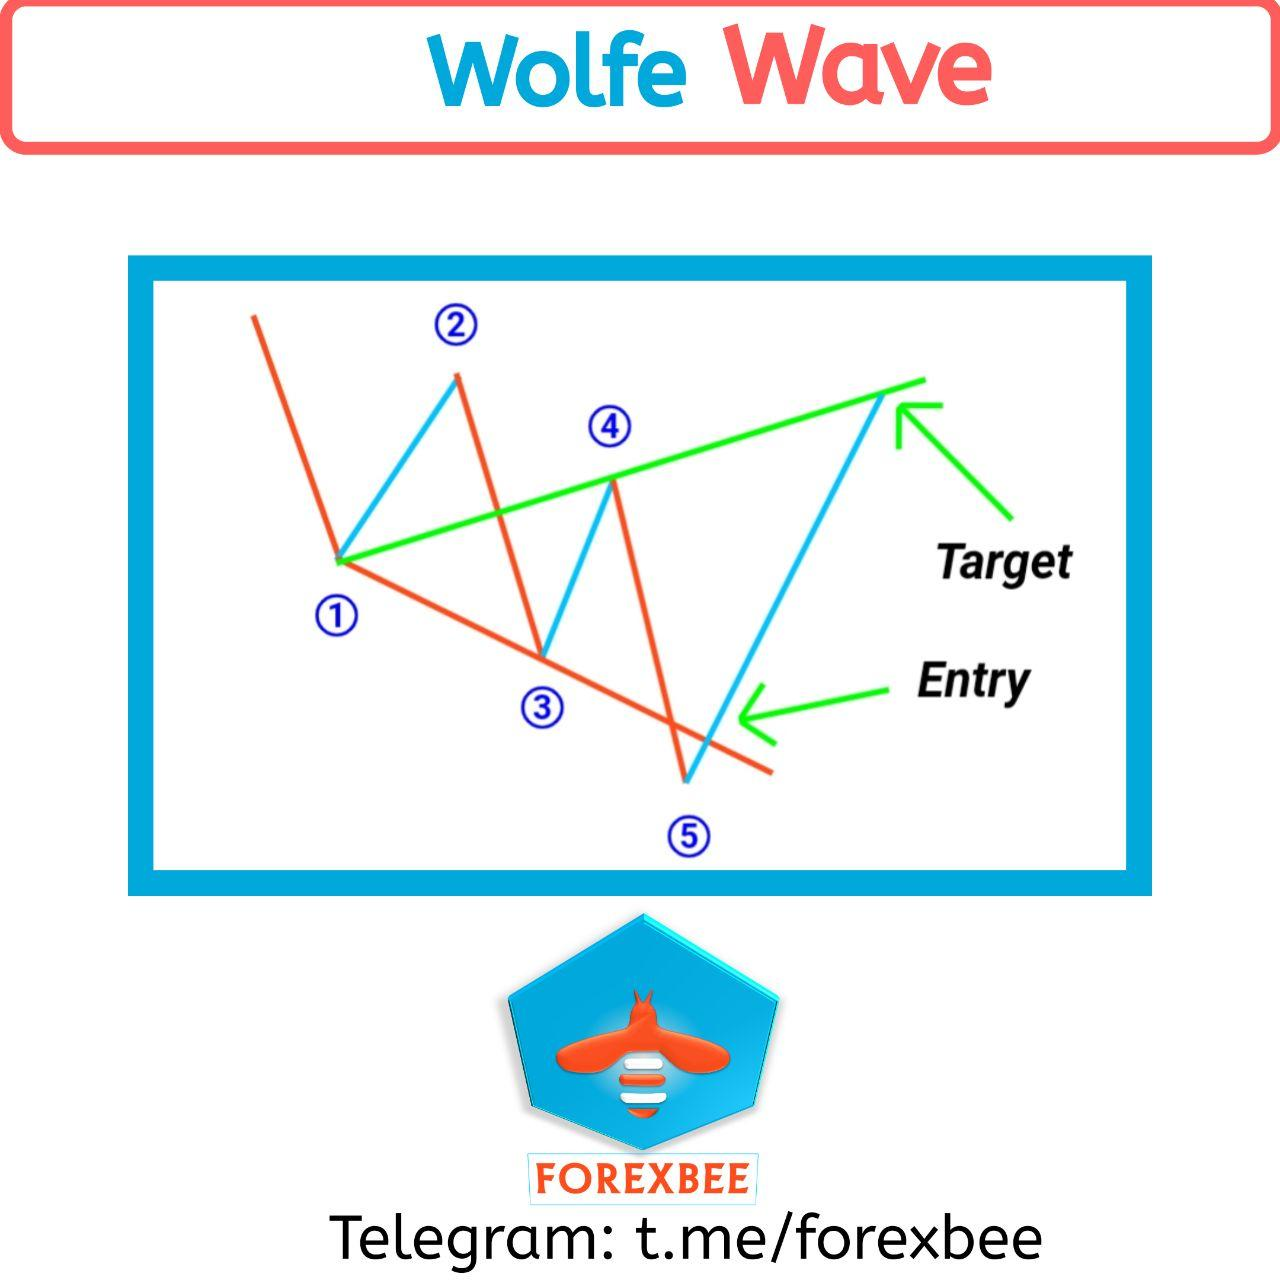 wolfe wave pattern